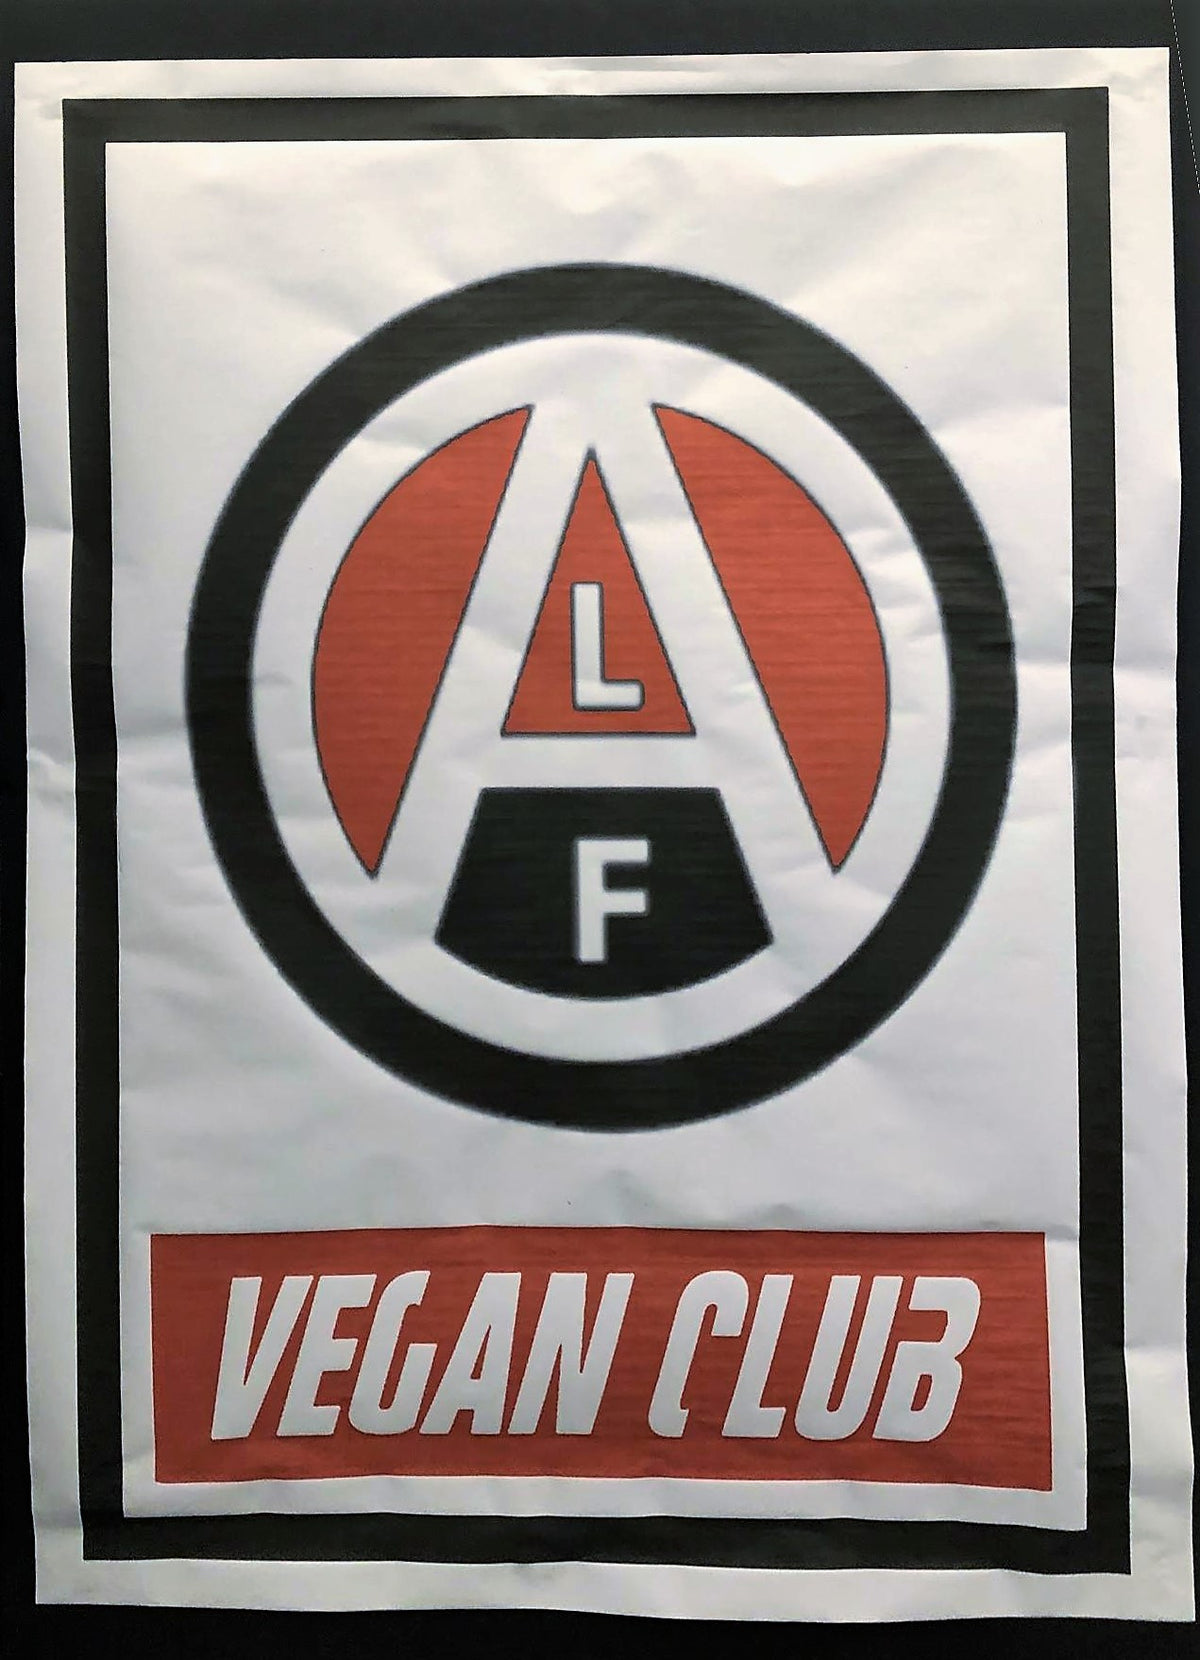 Street Art NewsPrint Poster Vegan Club featuring ALF Animal Liberation Front Logo